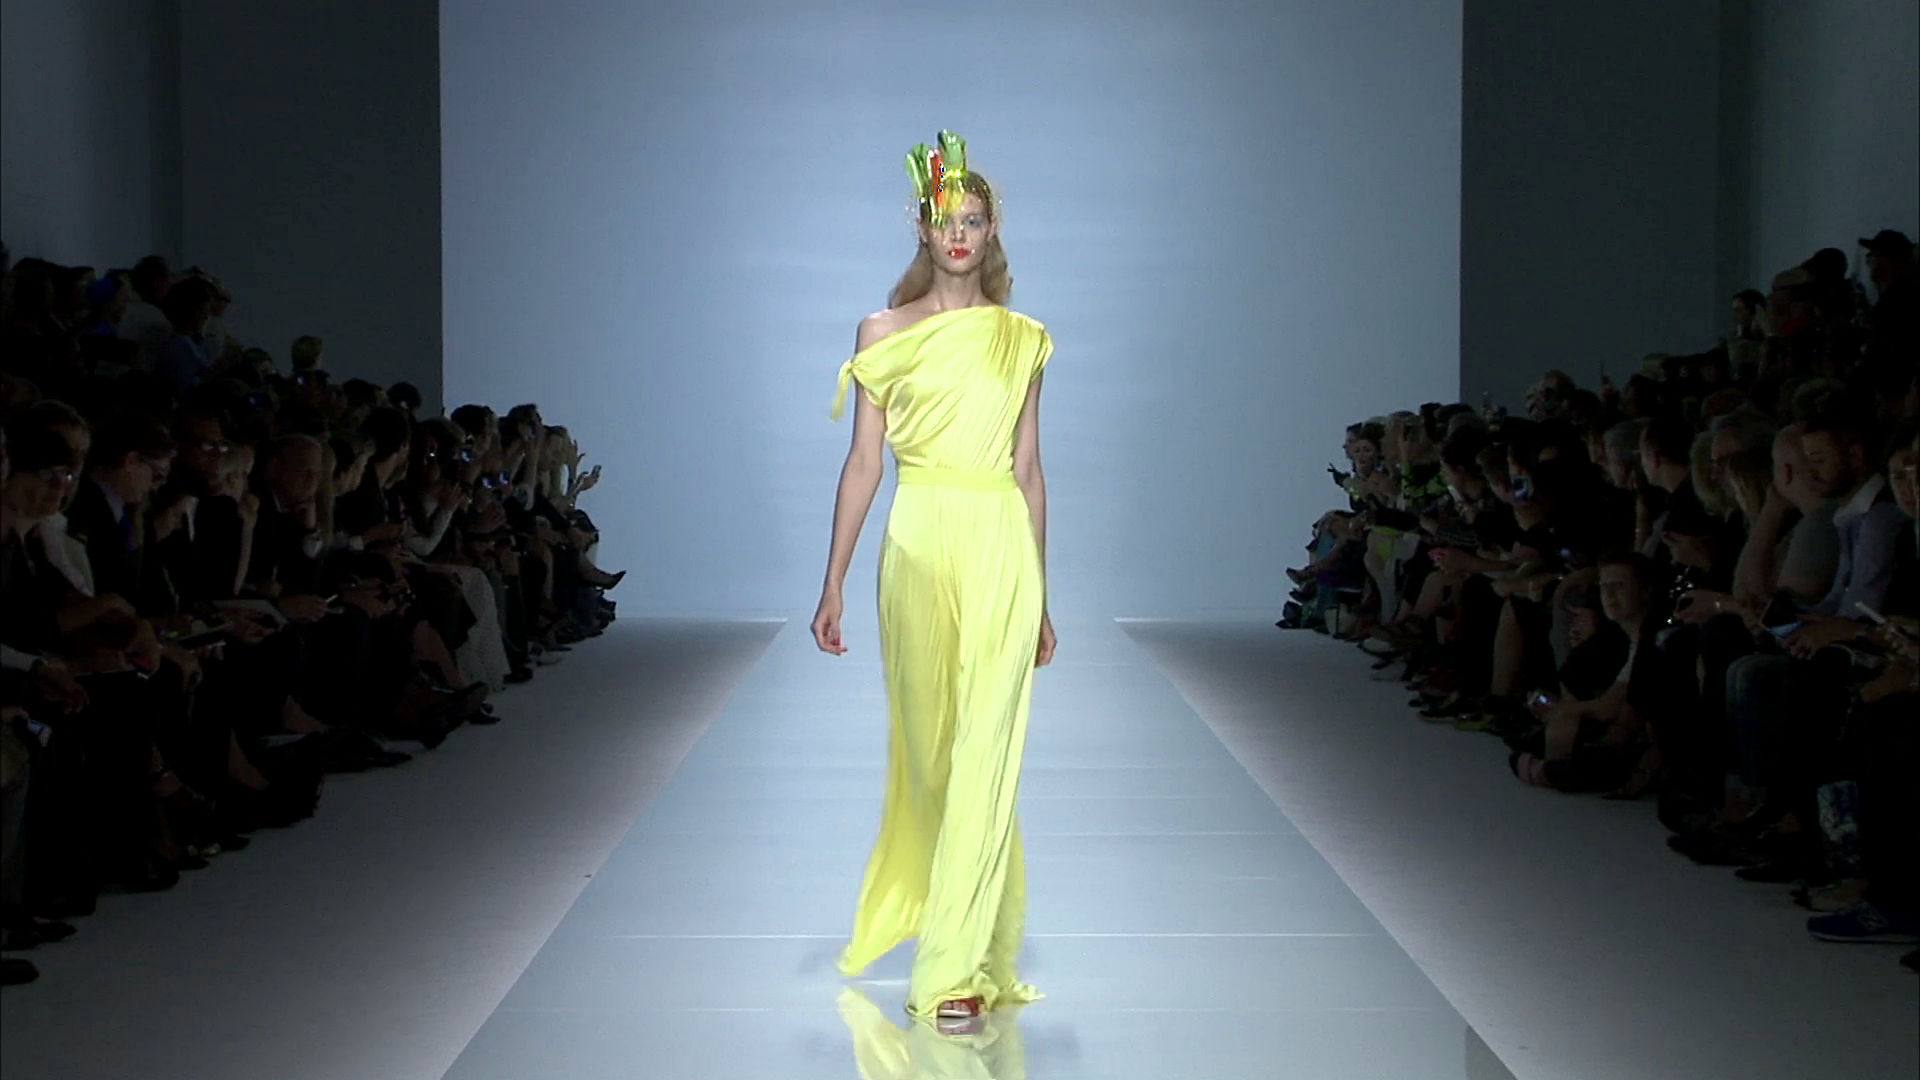 Emanuel Ungaro Spring Summer 2015 Women's Fashion Show - Paris Fashion Week